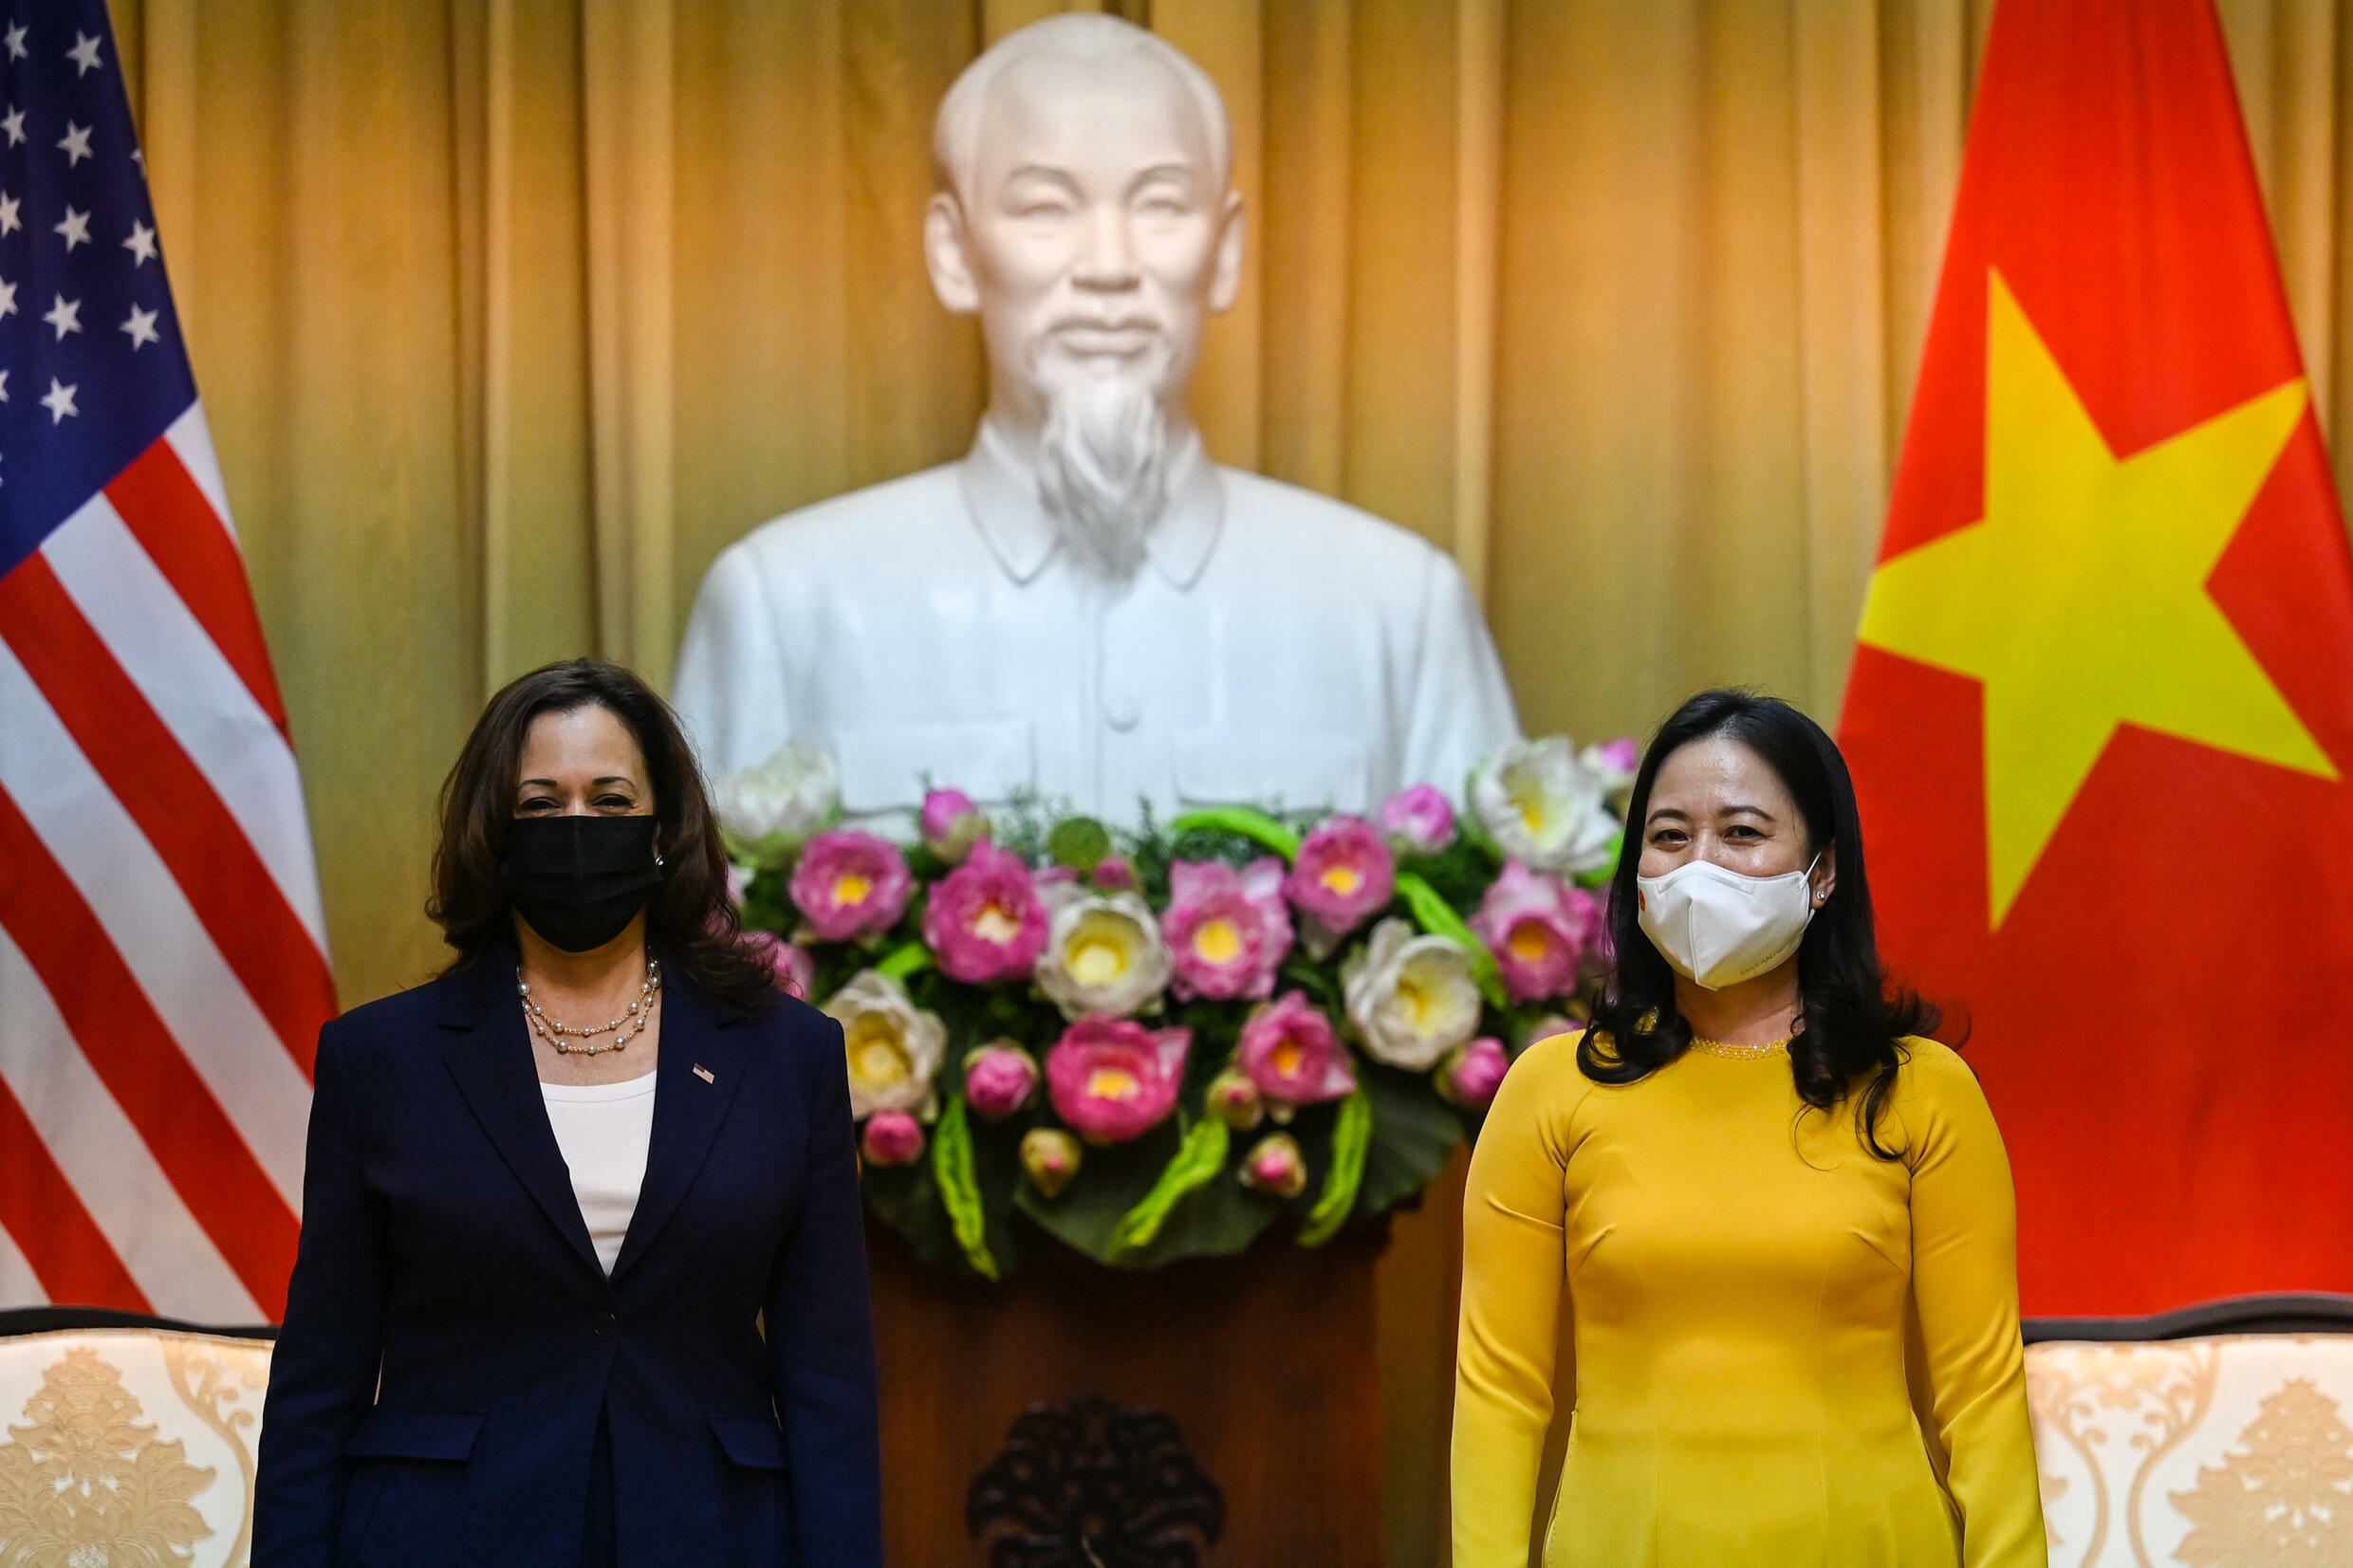 Vice President Kamala Harris (L, with Vietnam's Vice President Vo Thi Anh Xuan) is using her trip to stress US commitment to Asia